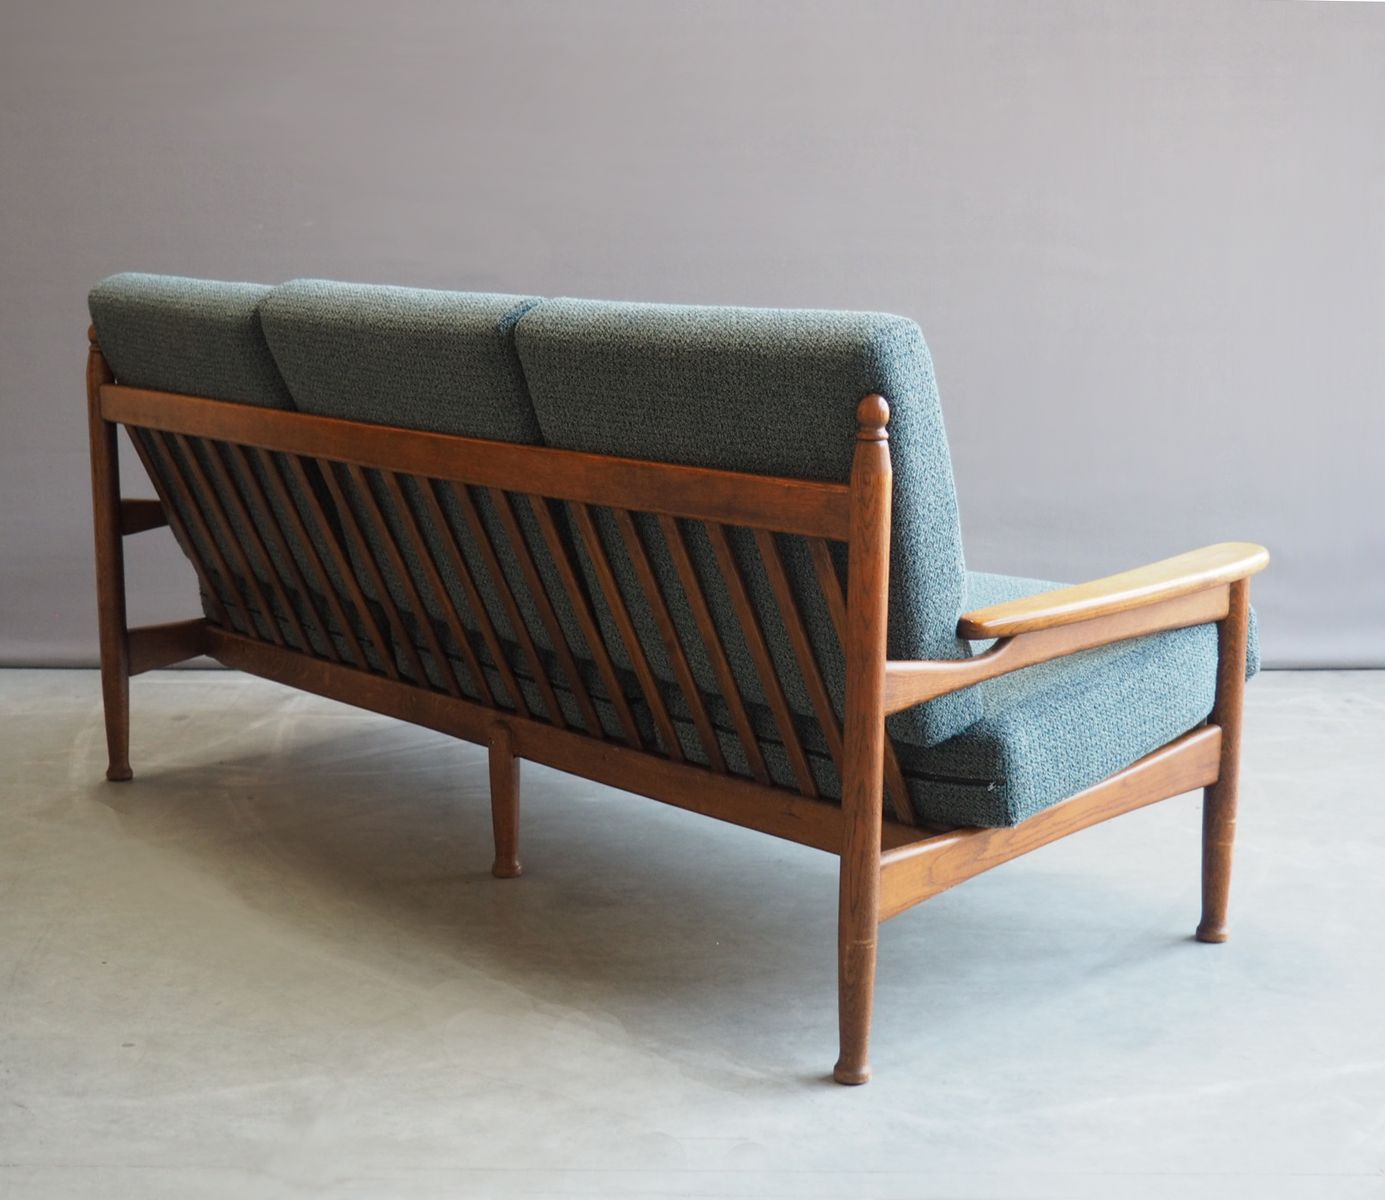 Vintage wooden danish sofa with loose cushions 1950s for for Vintage sectional sofa craigslist